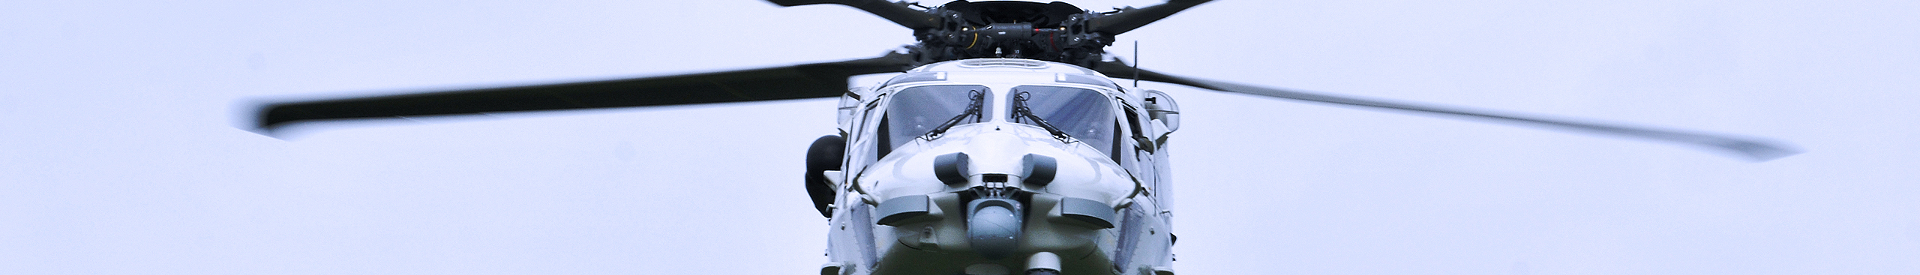 RNLAF NH90-NFH helicopter - width